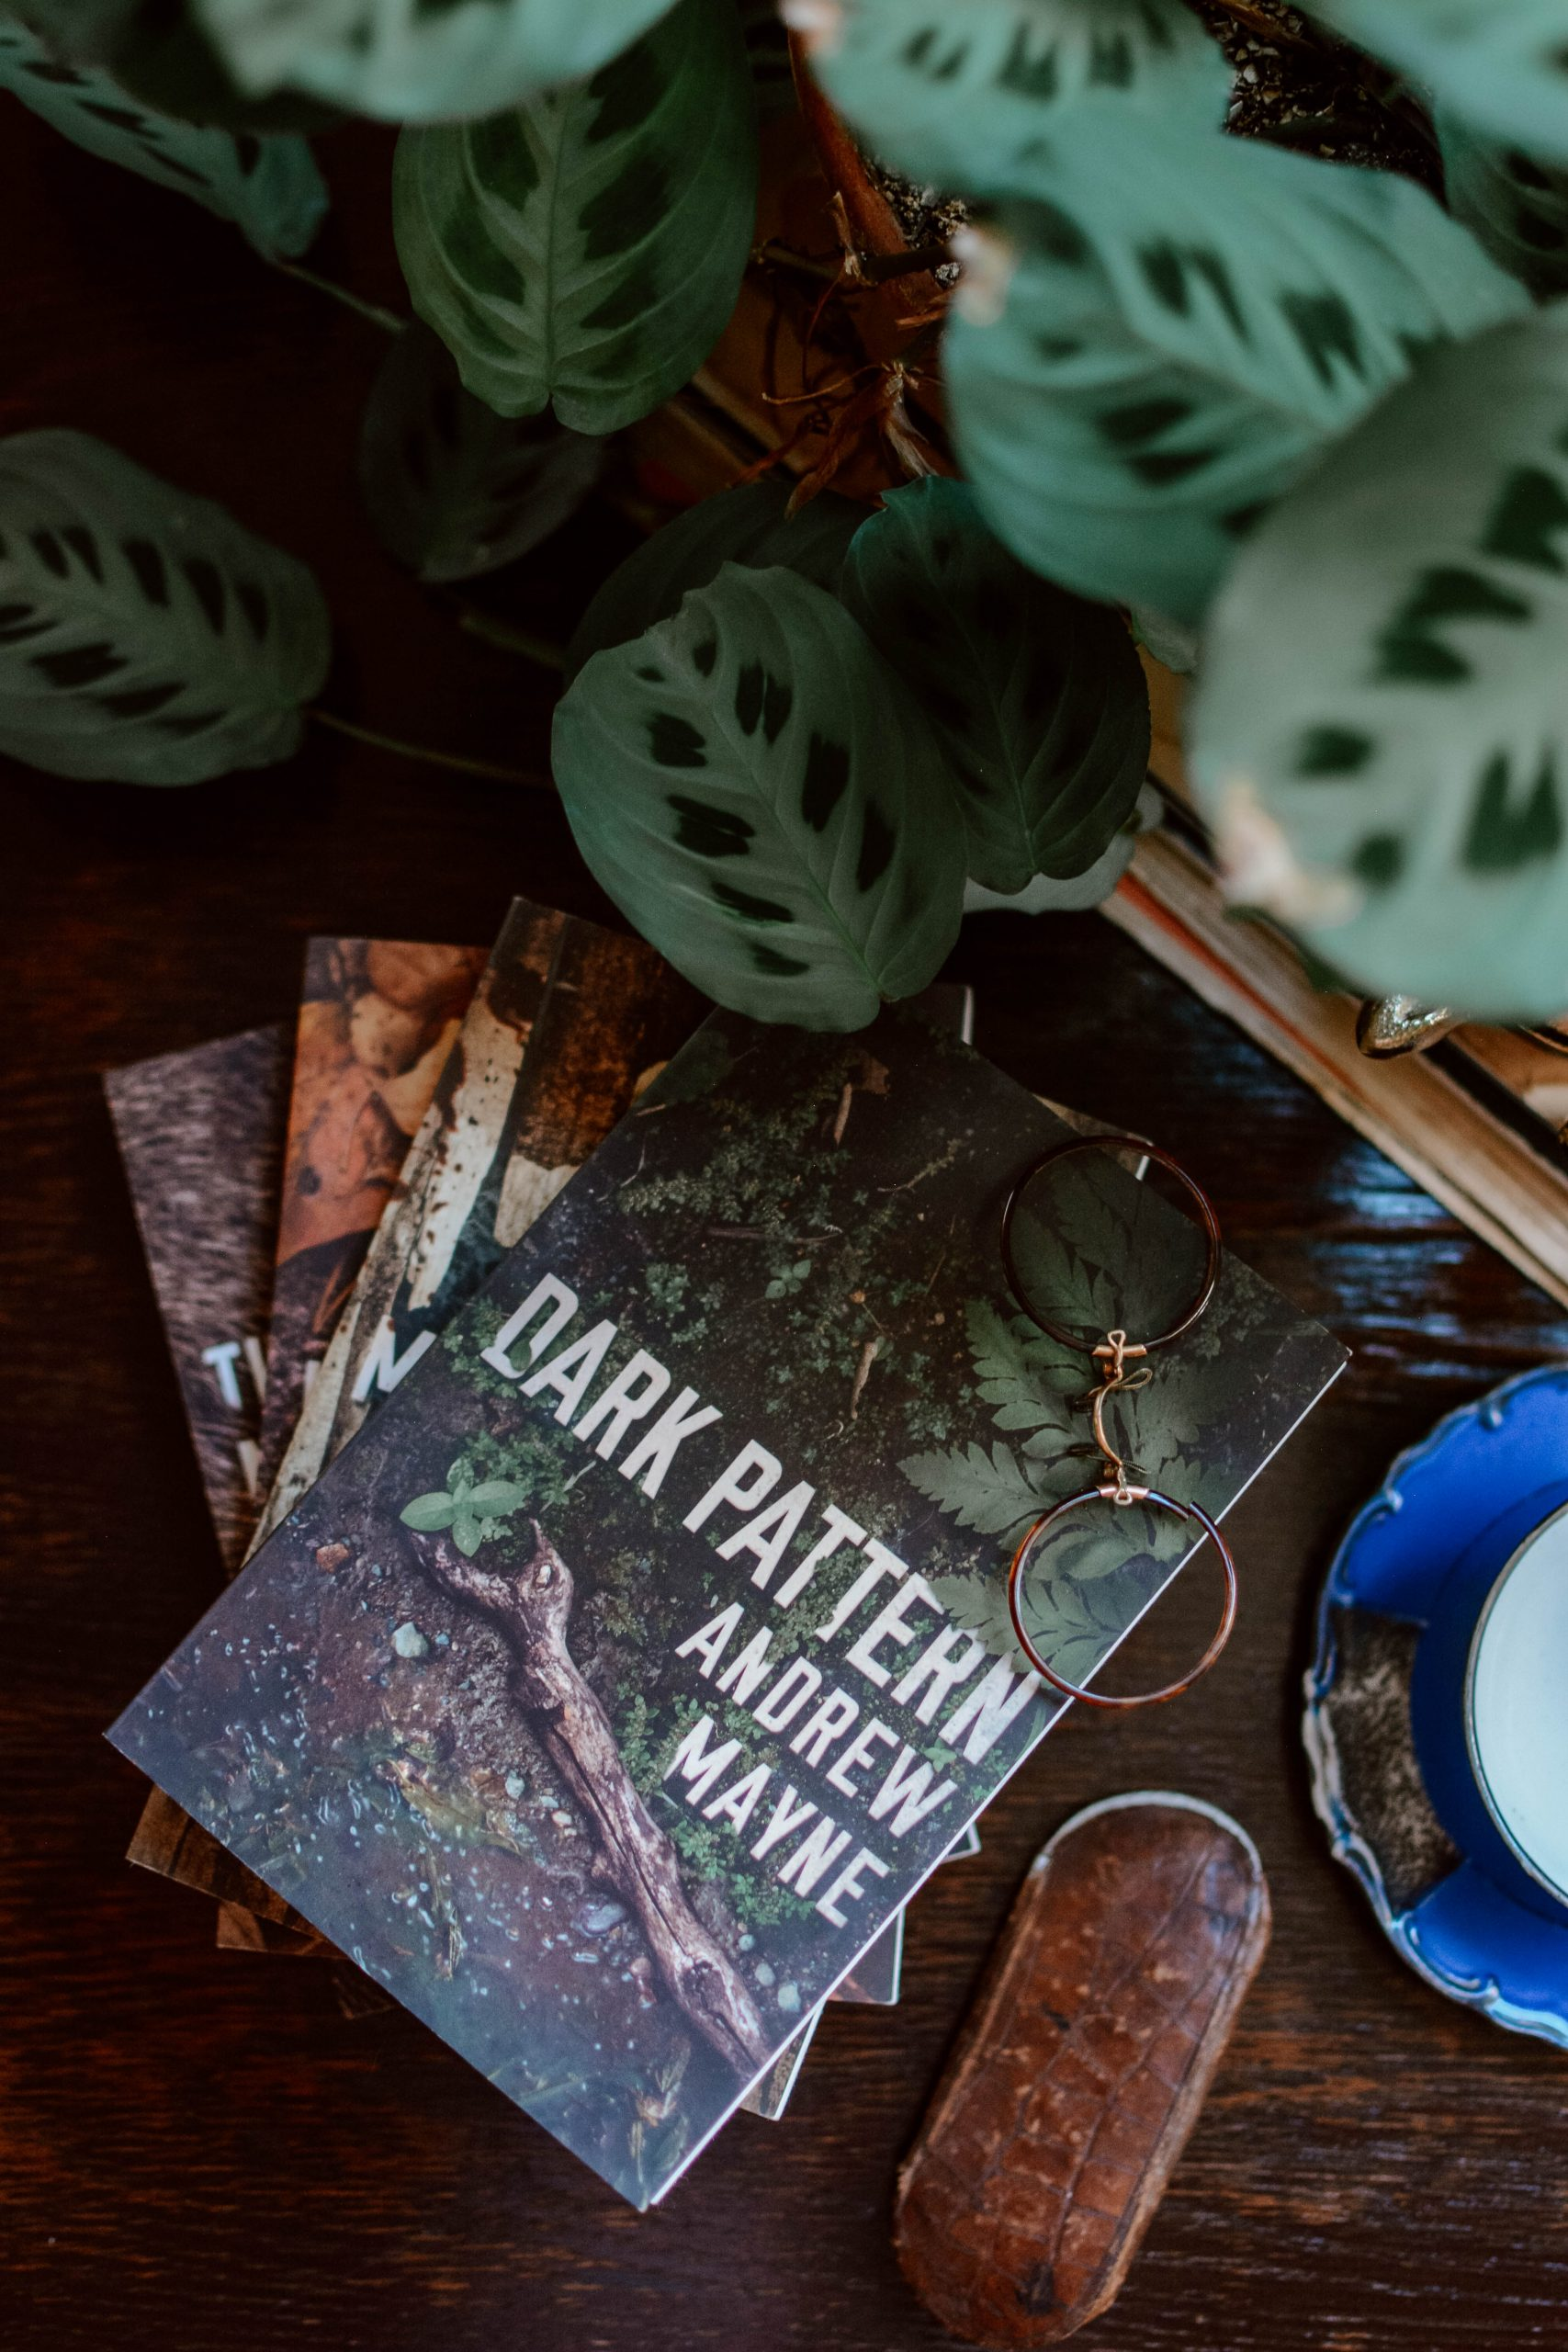 The Naturalist Series by Andrew Mayne review